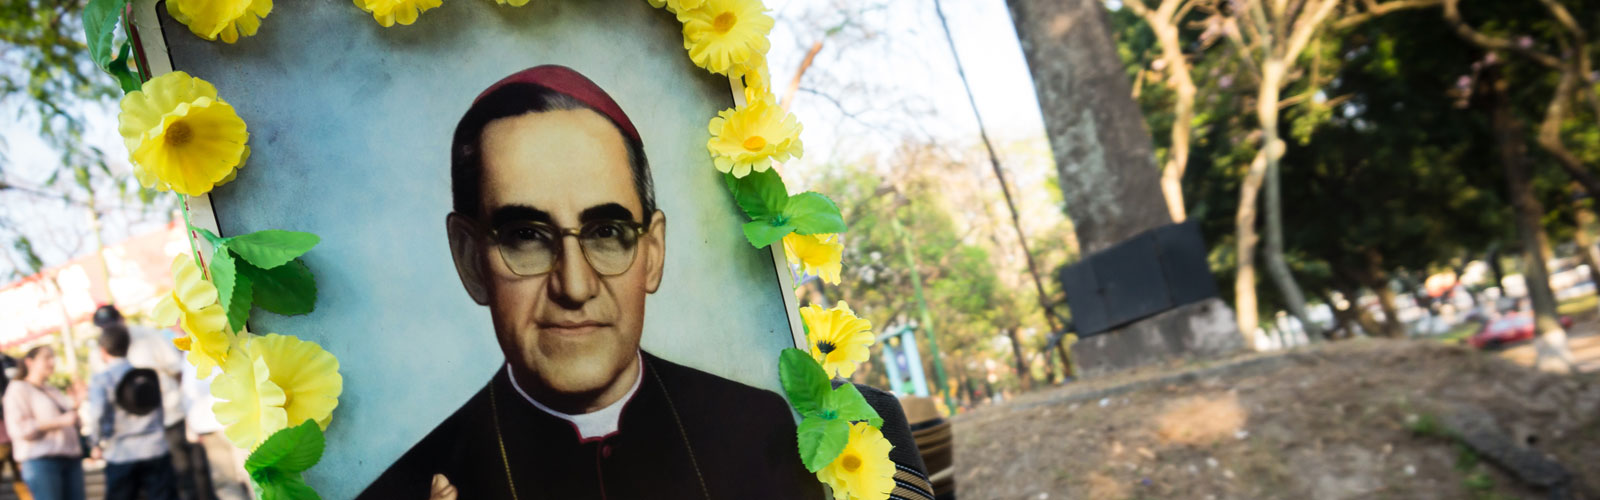 CAFOD partner Oscar Romero is going to be canonised on 14 October.